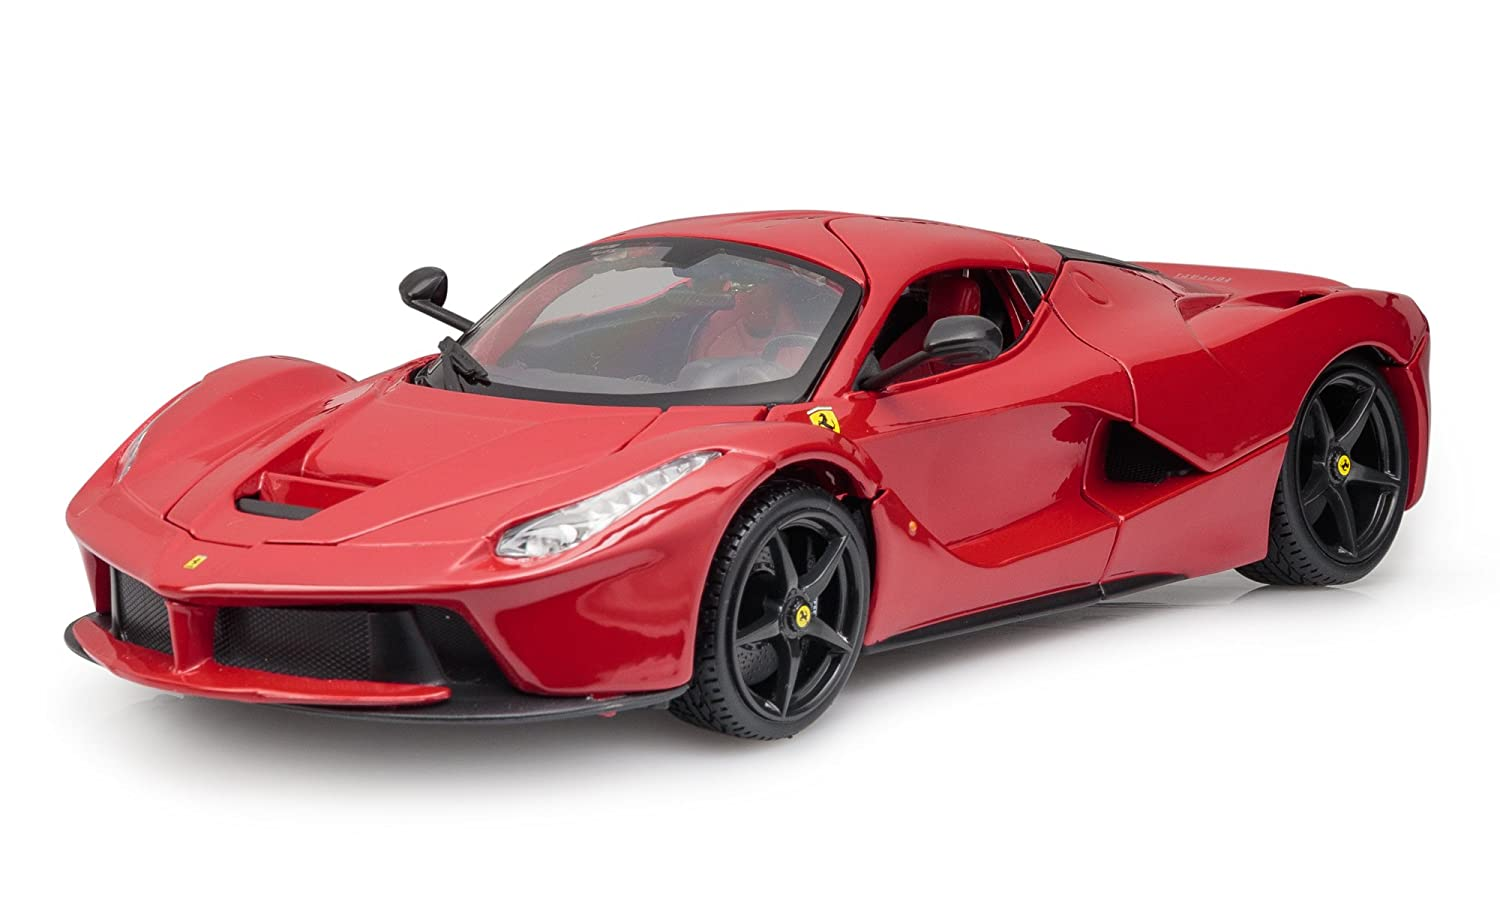 Burago 1/18 Scale Diecast 18-16001R Ferrari LaFerrari Supercar Red Black Wheels B01N1S8K2L